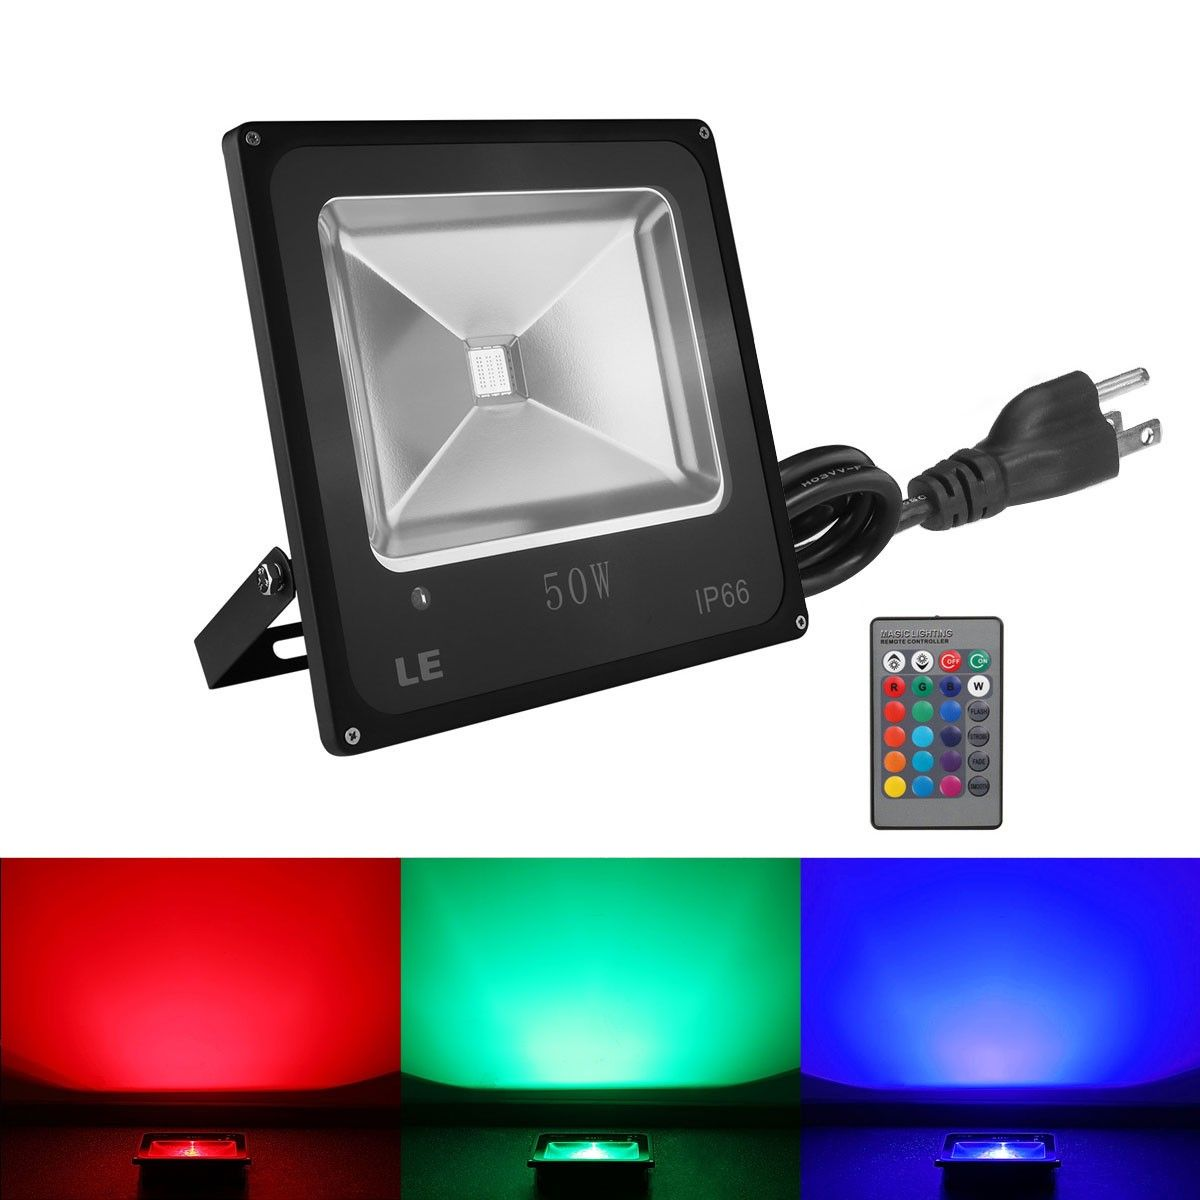 50w rgb led security flood lights color changing 16 colors 4 online shopping for le remote control rgb led flood light 16 colors 4 modes color changing waterproof led security flood light various shapes types mozeypictures